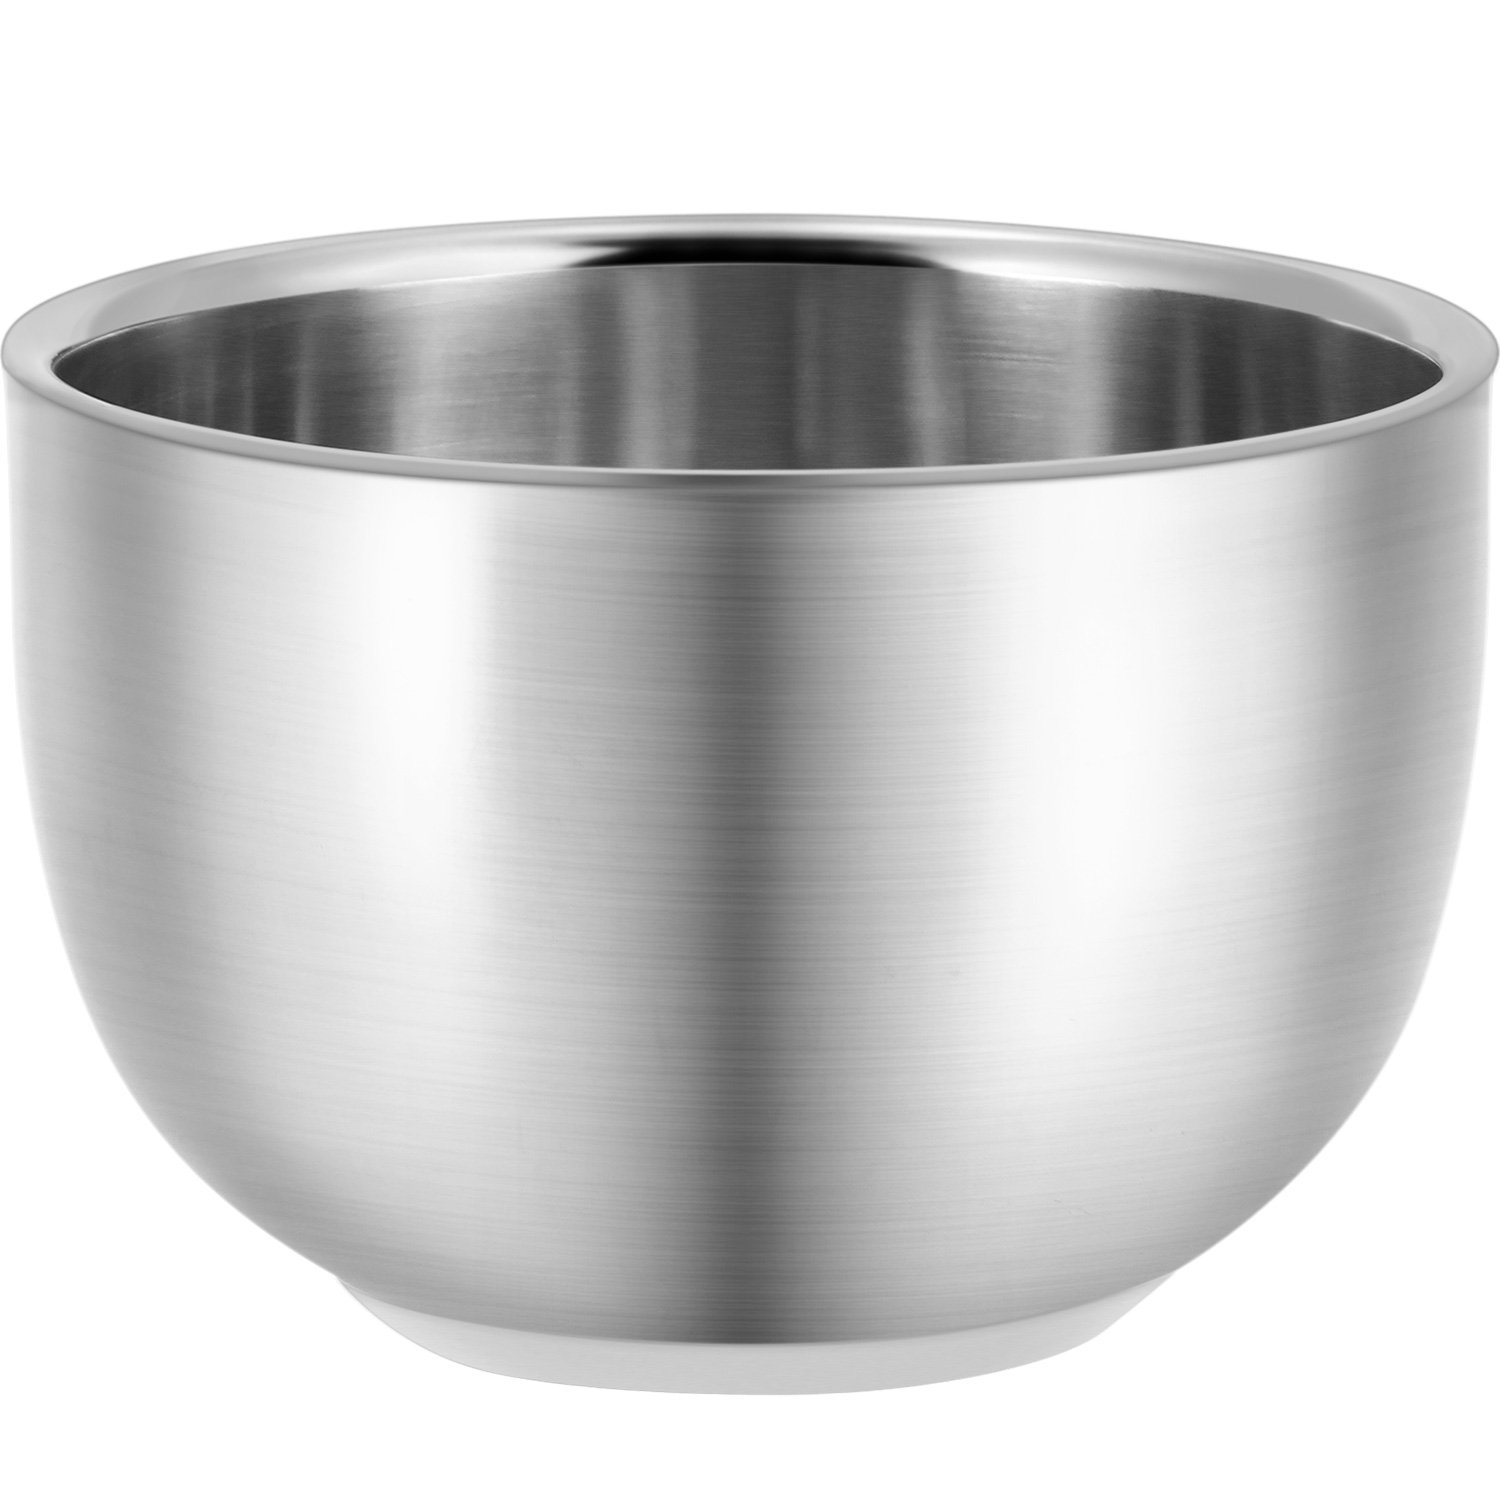 Blulu 2.1 Inch Stainless Steel Shaving Bowl Soap Cups, Durable Unbreakable Hair Shave Mugs for Shaving Soap and Cream